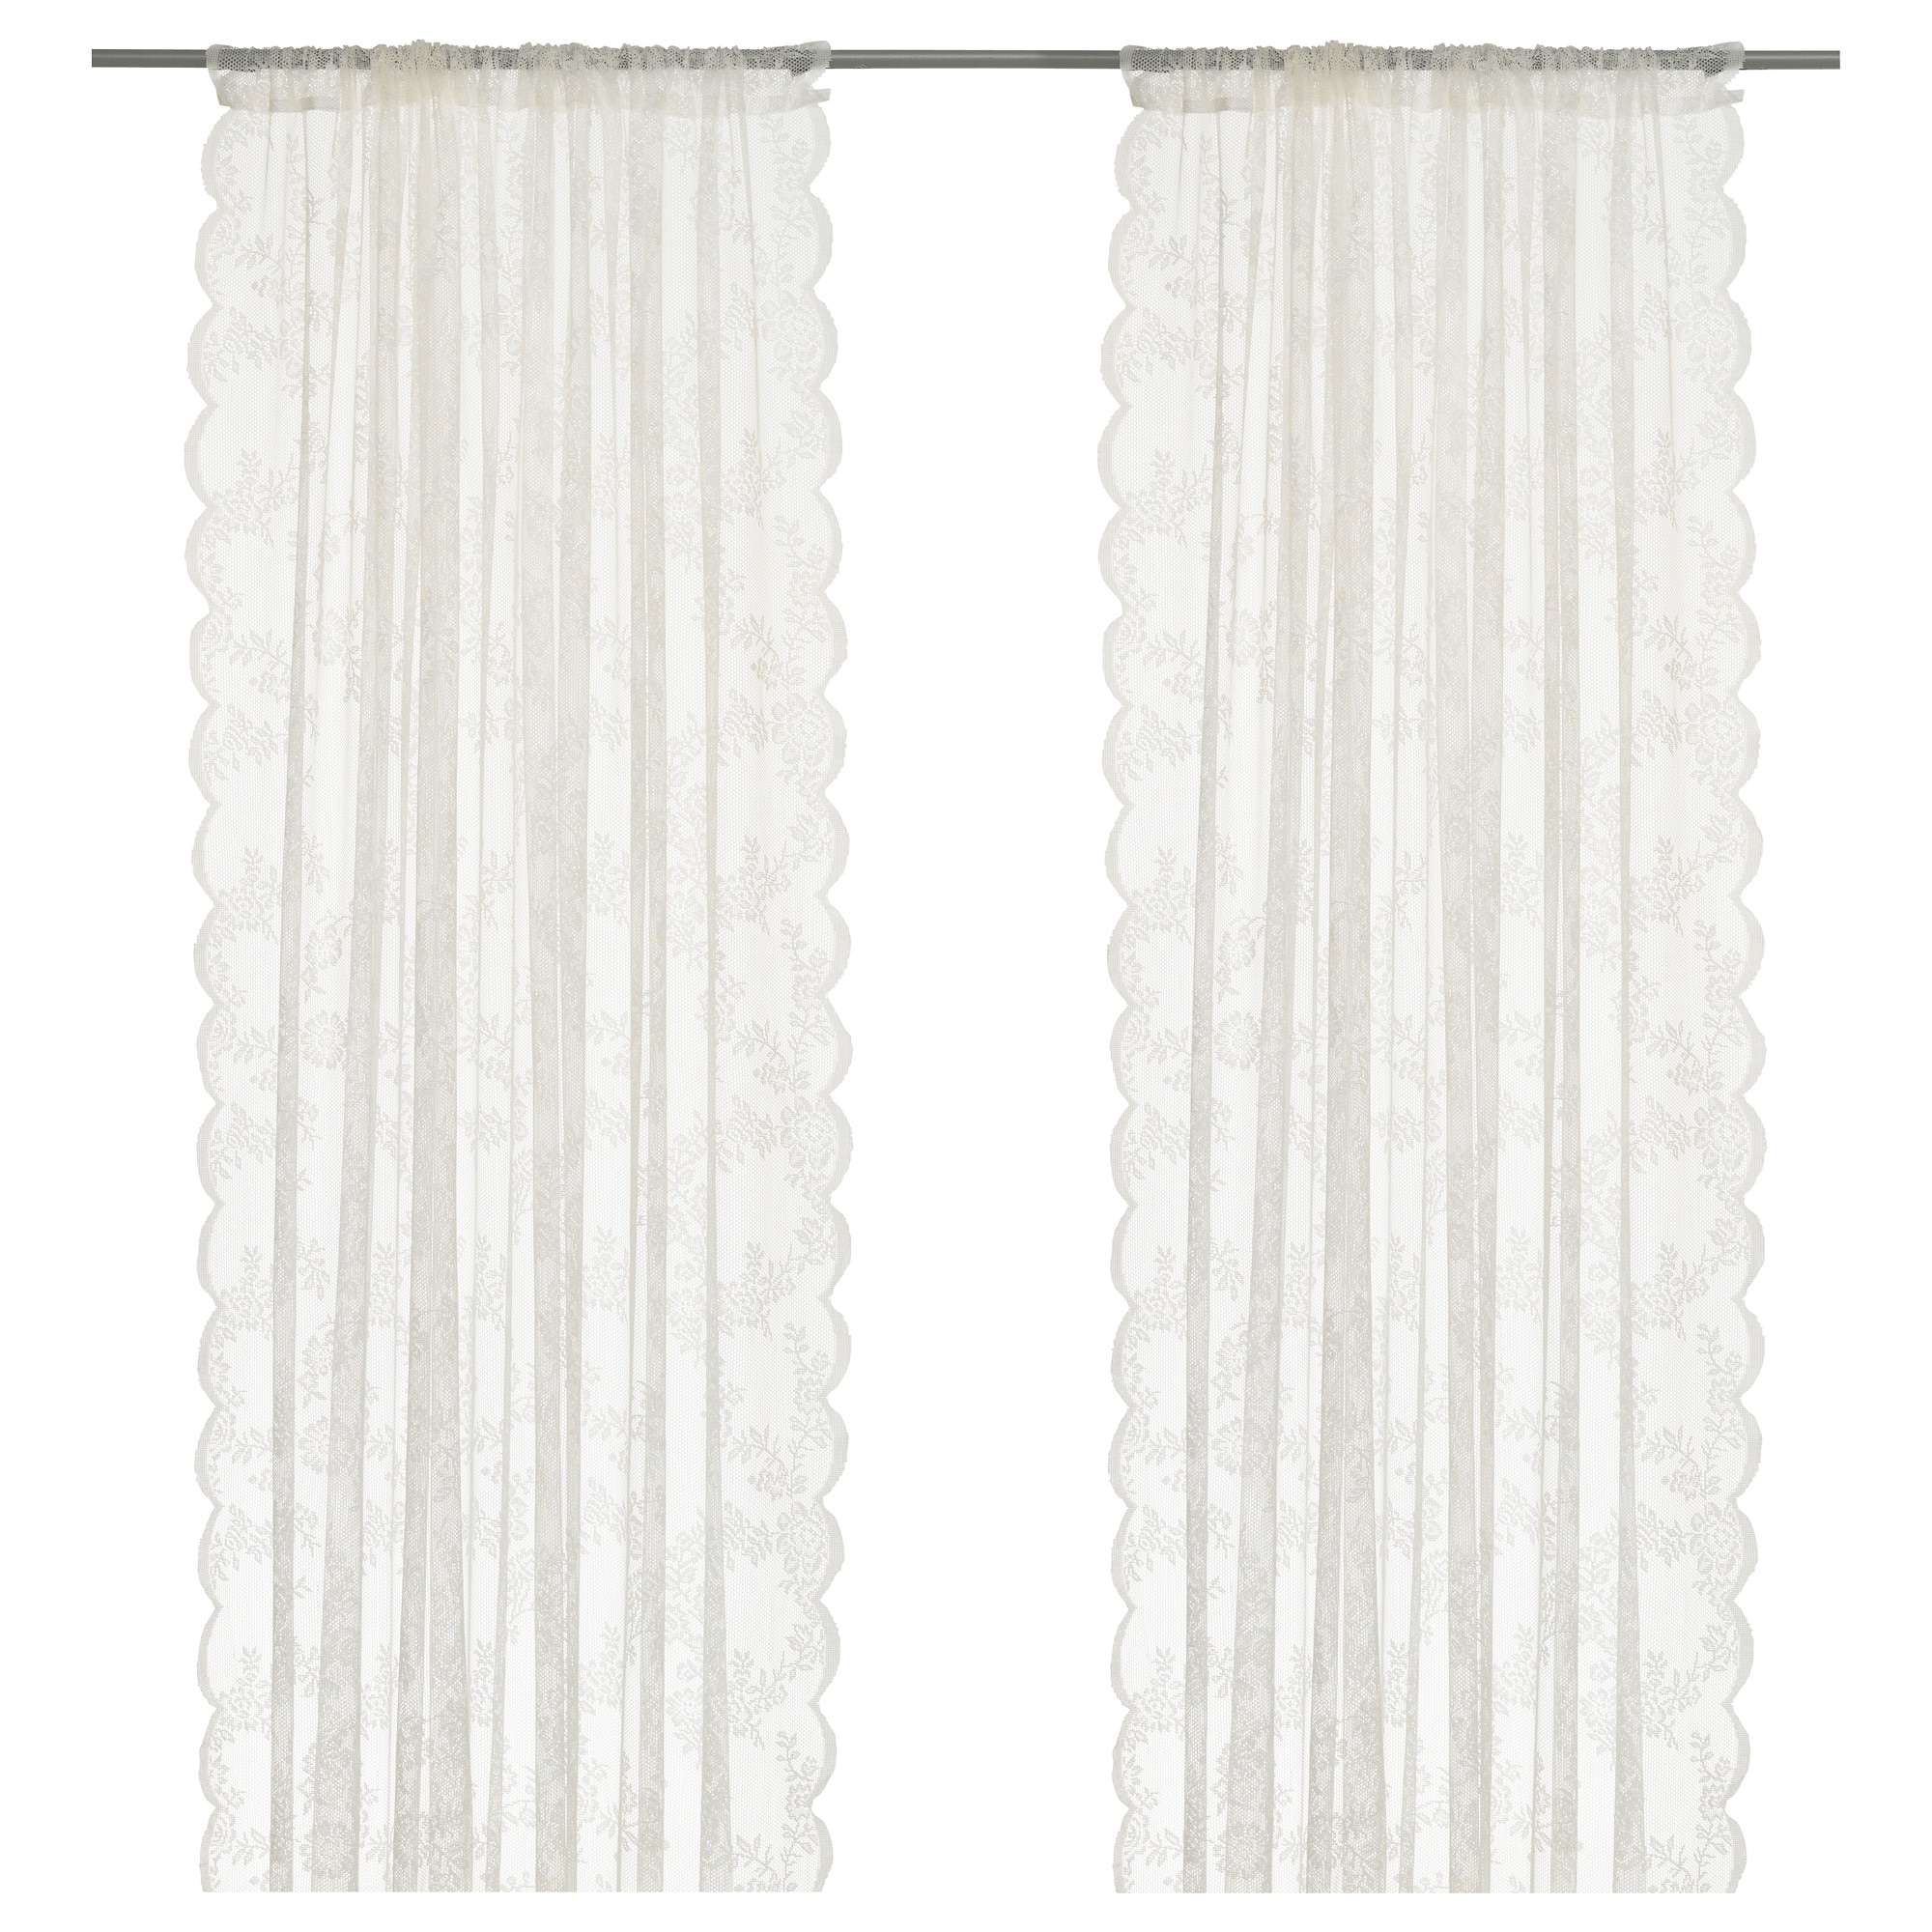 Lace Sheers Alvine Spets Lace Curtains 1 Pair Ikea